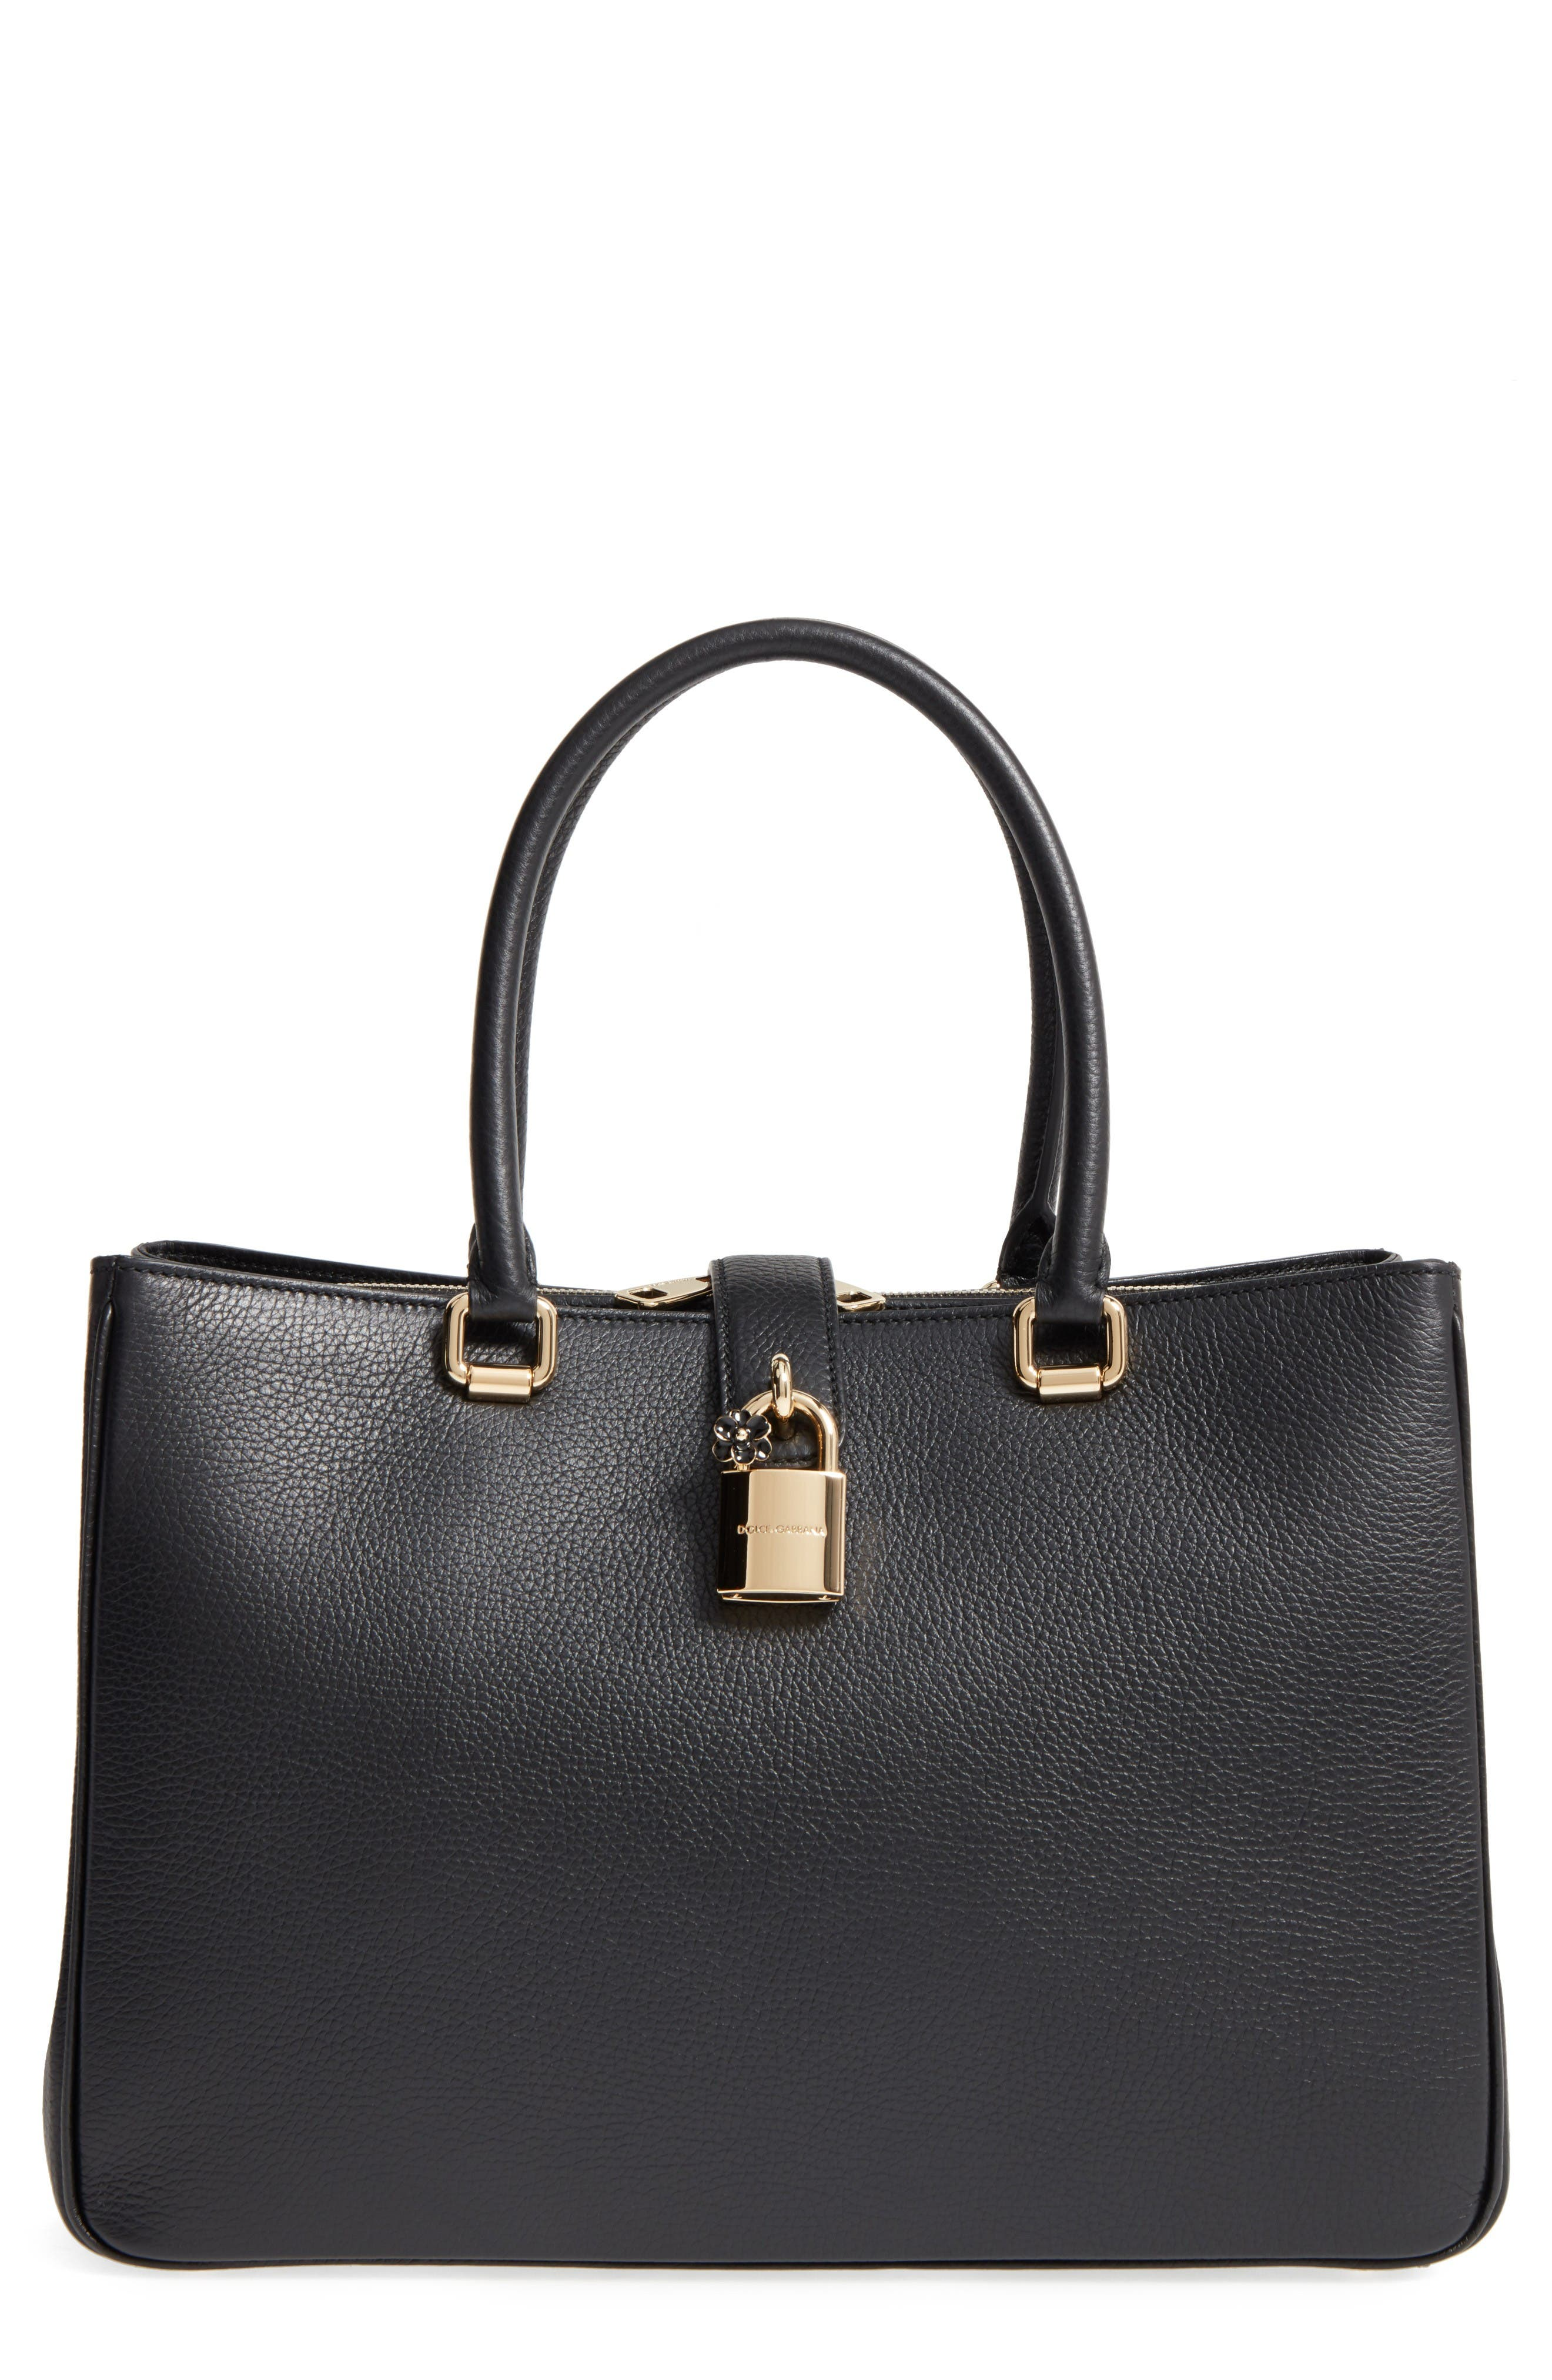 Alternate Image 1 Selected - Dolce&Gabbana Grained Leather Shopper